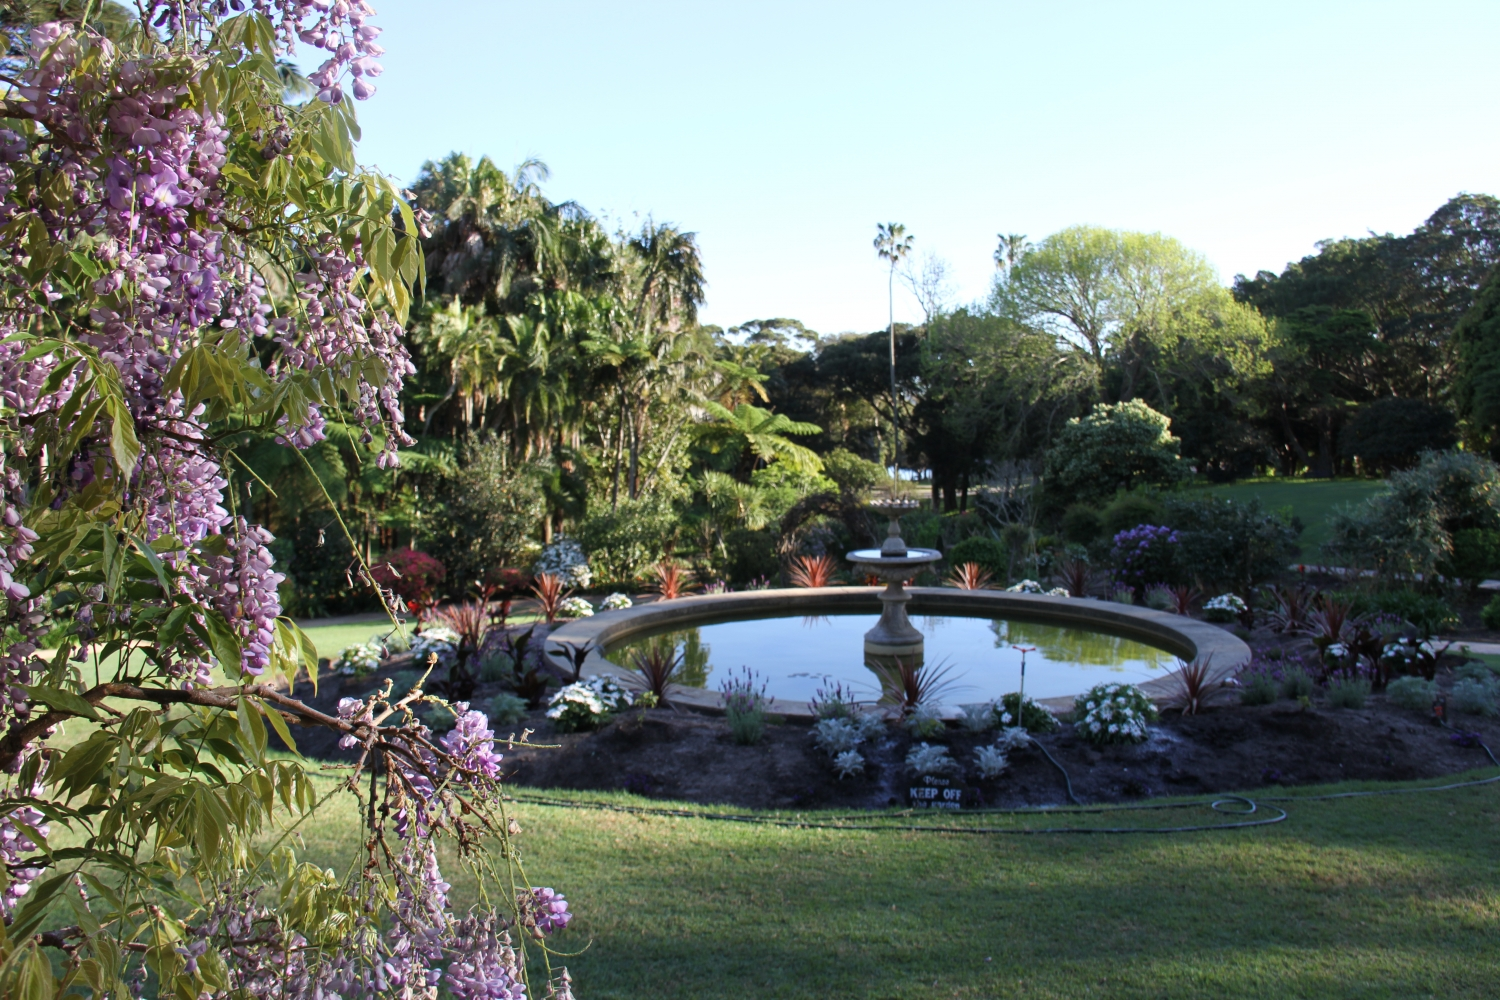 Photograph of wisteria with fountain and garden